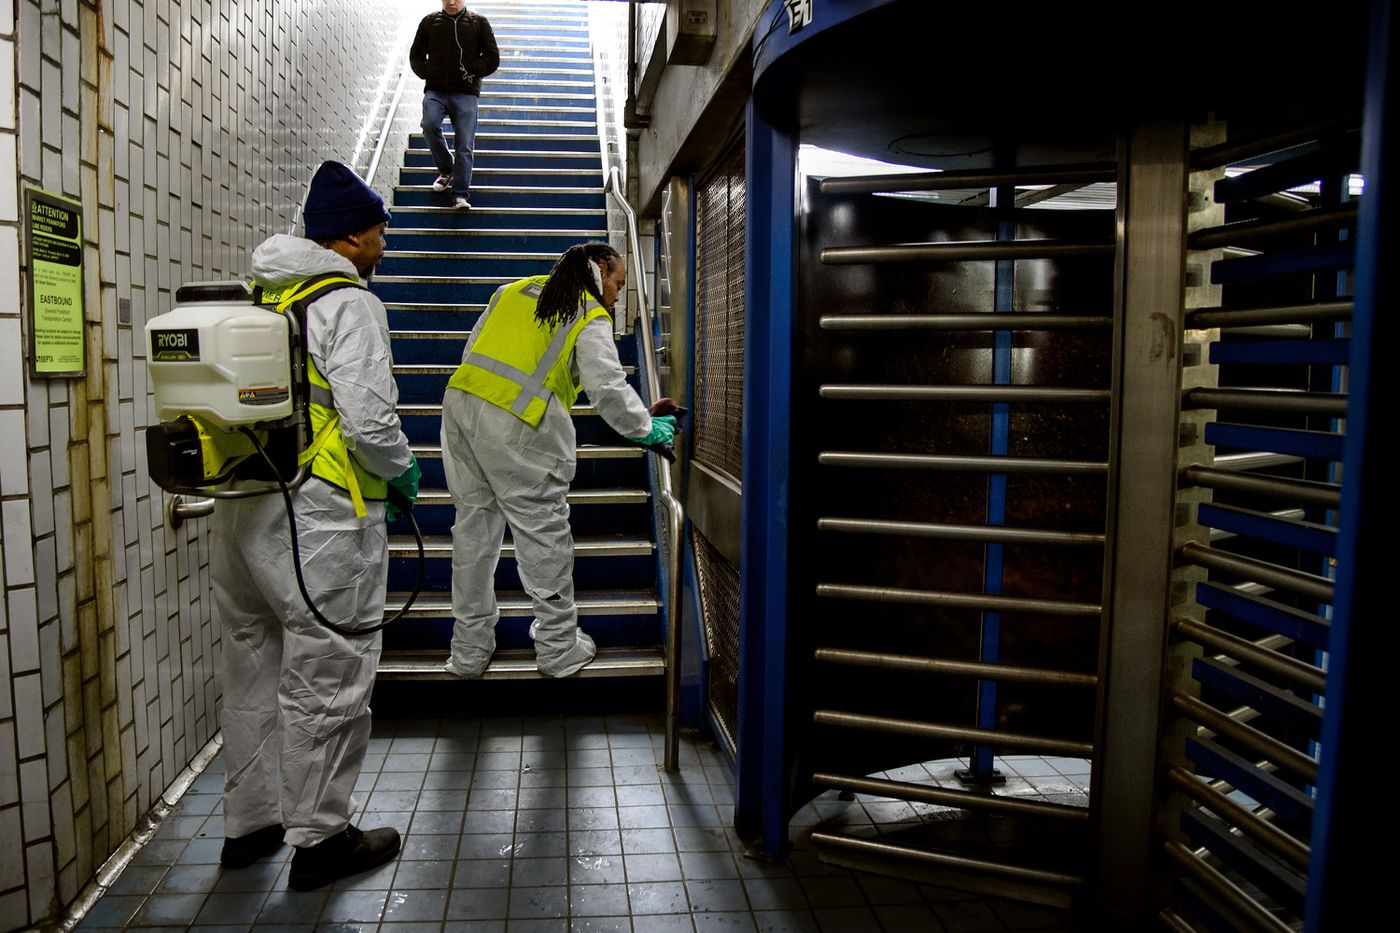 SEPTA maintenance workers Janil Brown and Ira Davis (right) clean the handrails at the entrance to the Market-Frankford 2nd Street Station on Wednesday. The workers were in the station to demonstrate how they clean the subways (normally done at night after the stations close). l